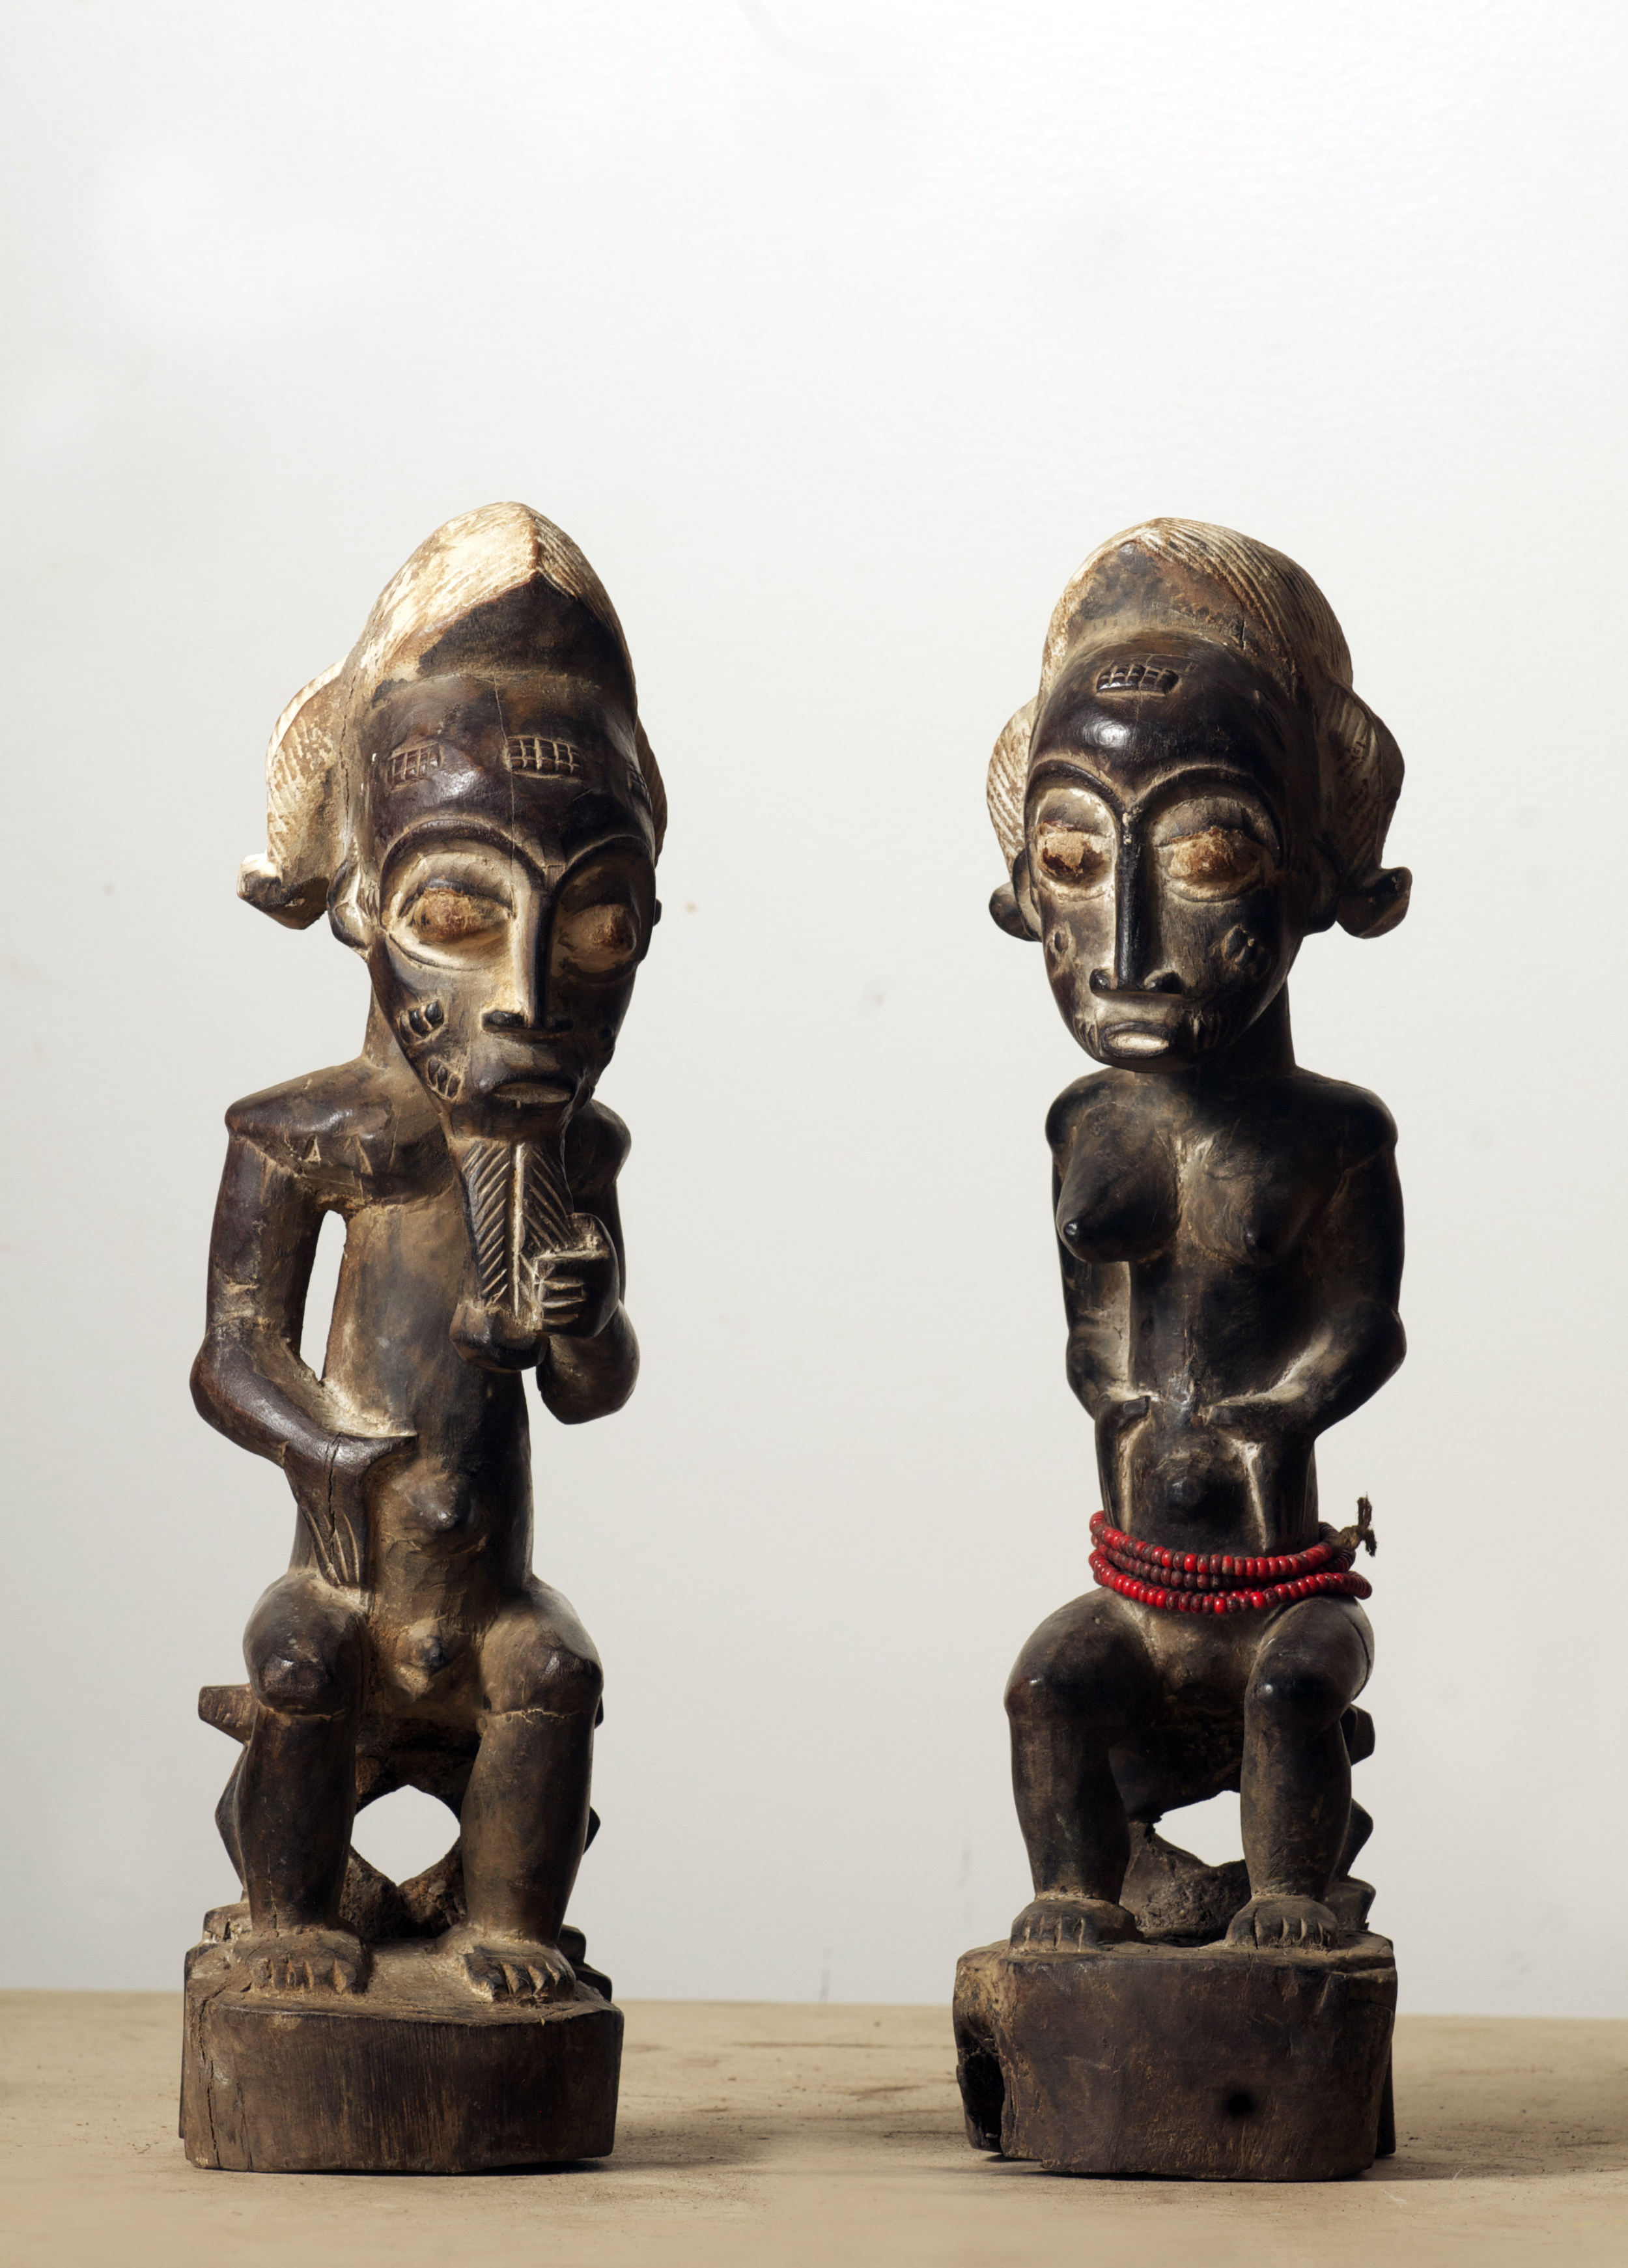 Baule couple figure, Cote D'Ivoire. Height 14.3 inch.Pp. $150.00 each.jpg